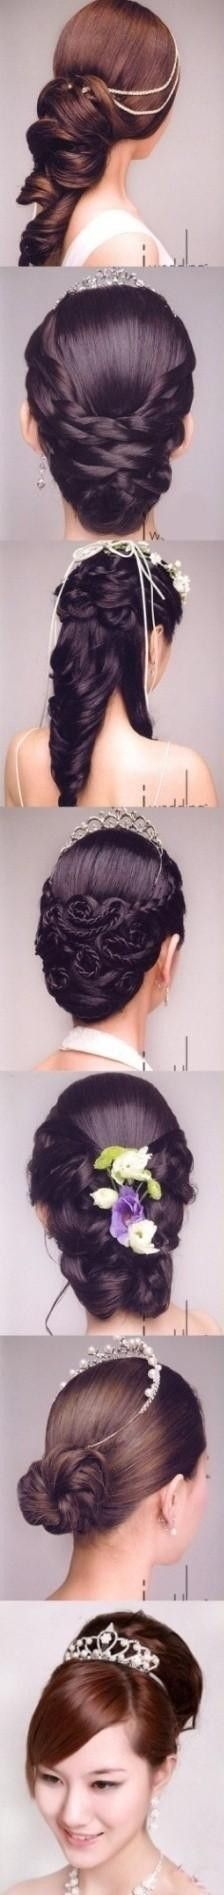 A variety of bridal hairstyles